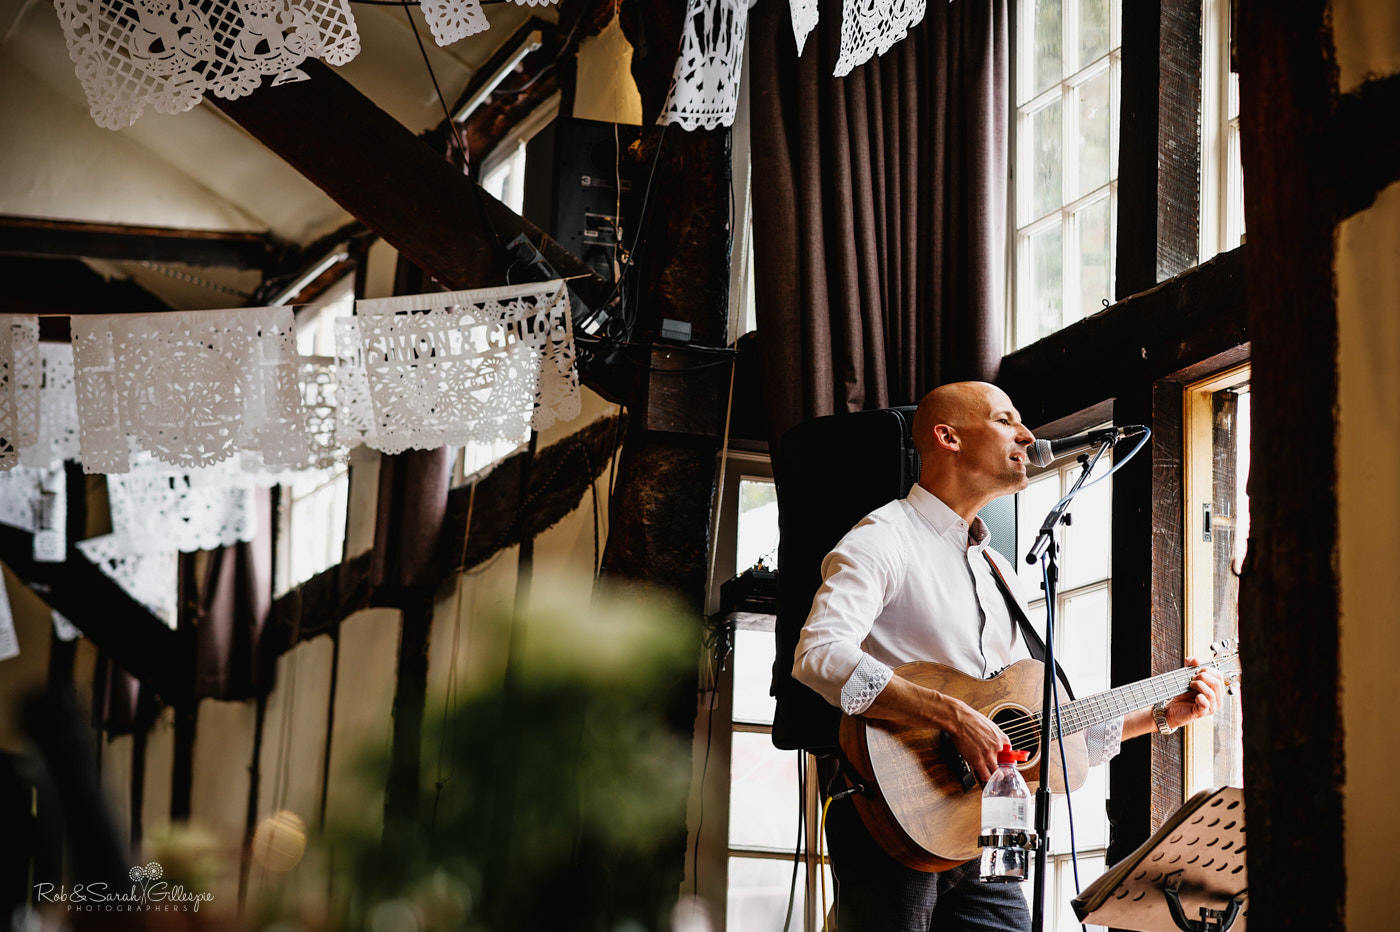 Musician plays at wedding reception at Belbroughton village hall